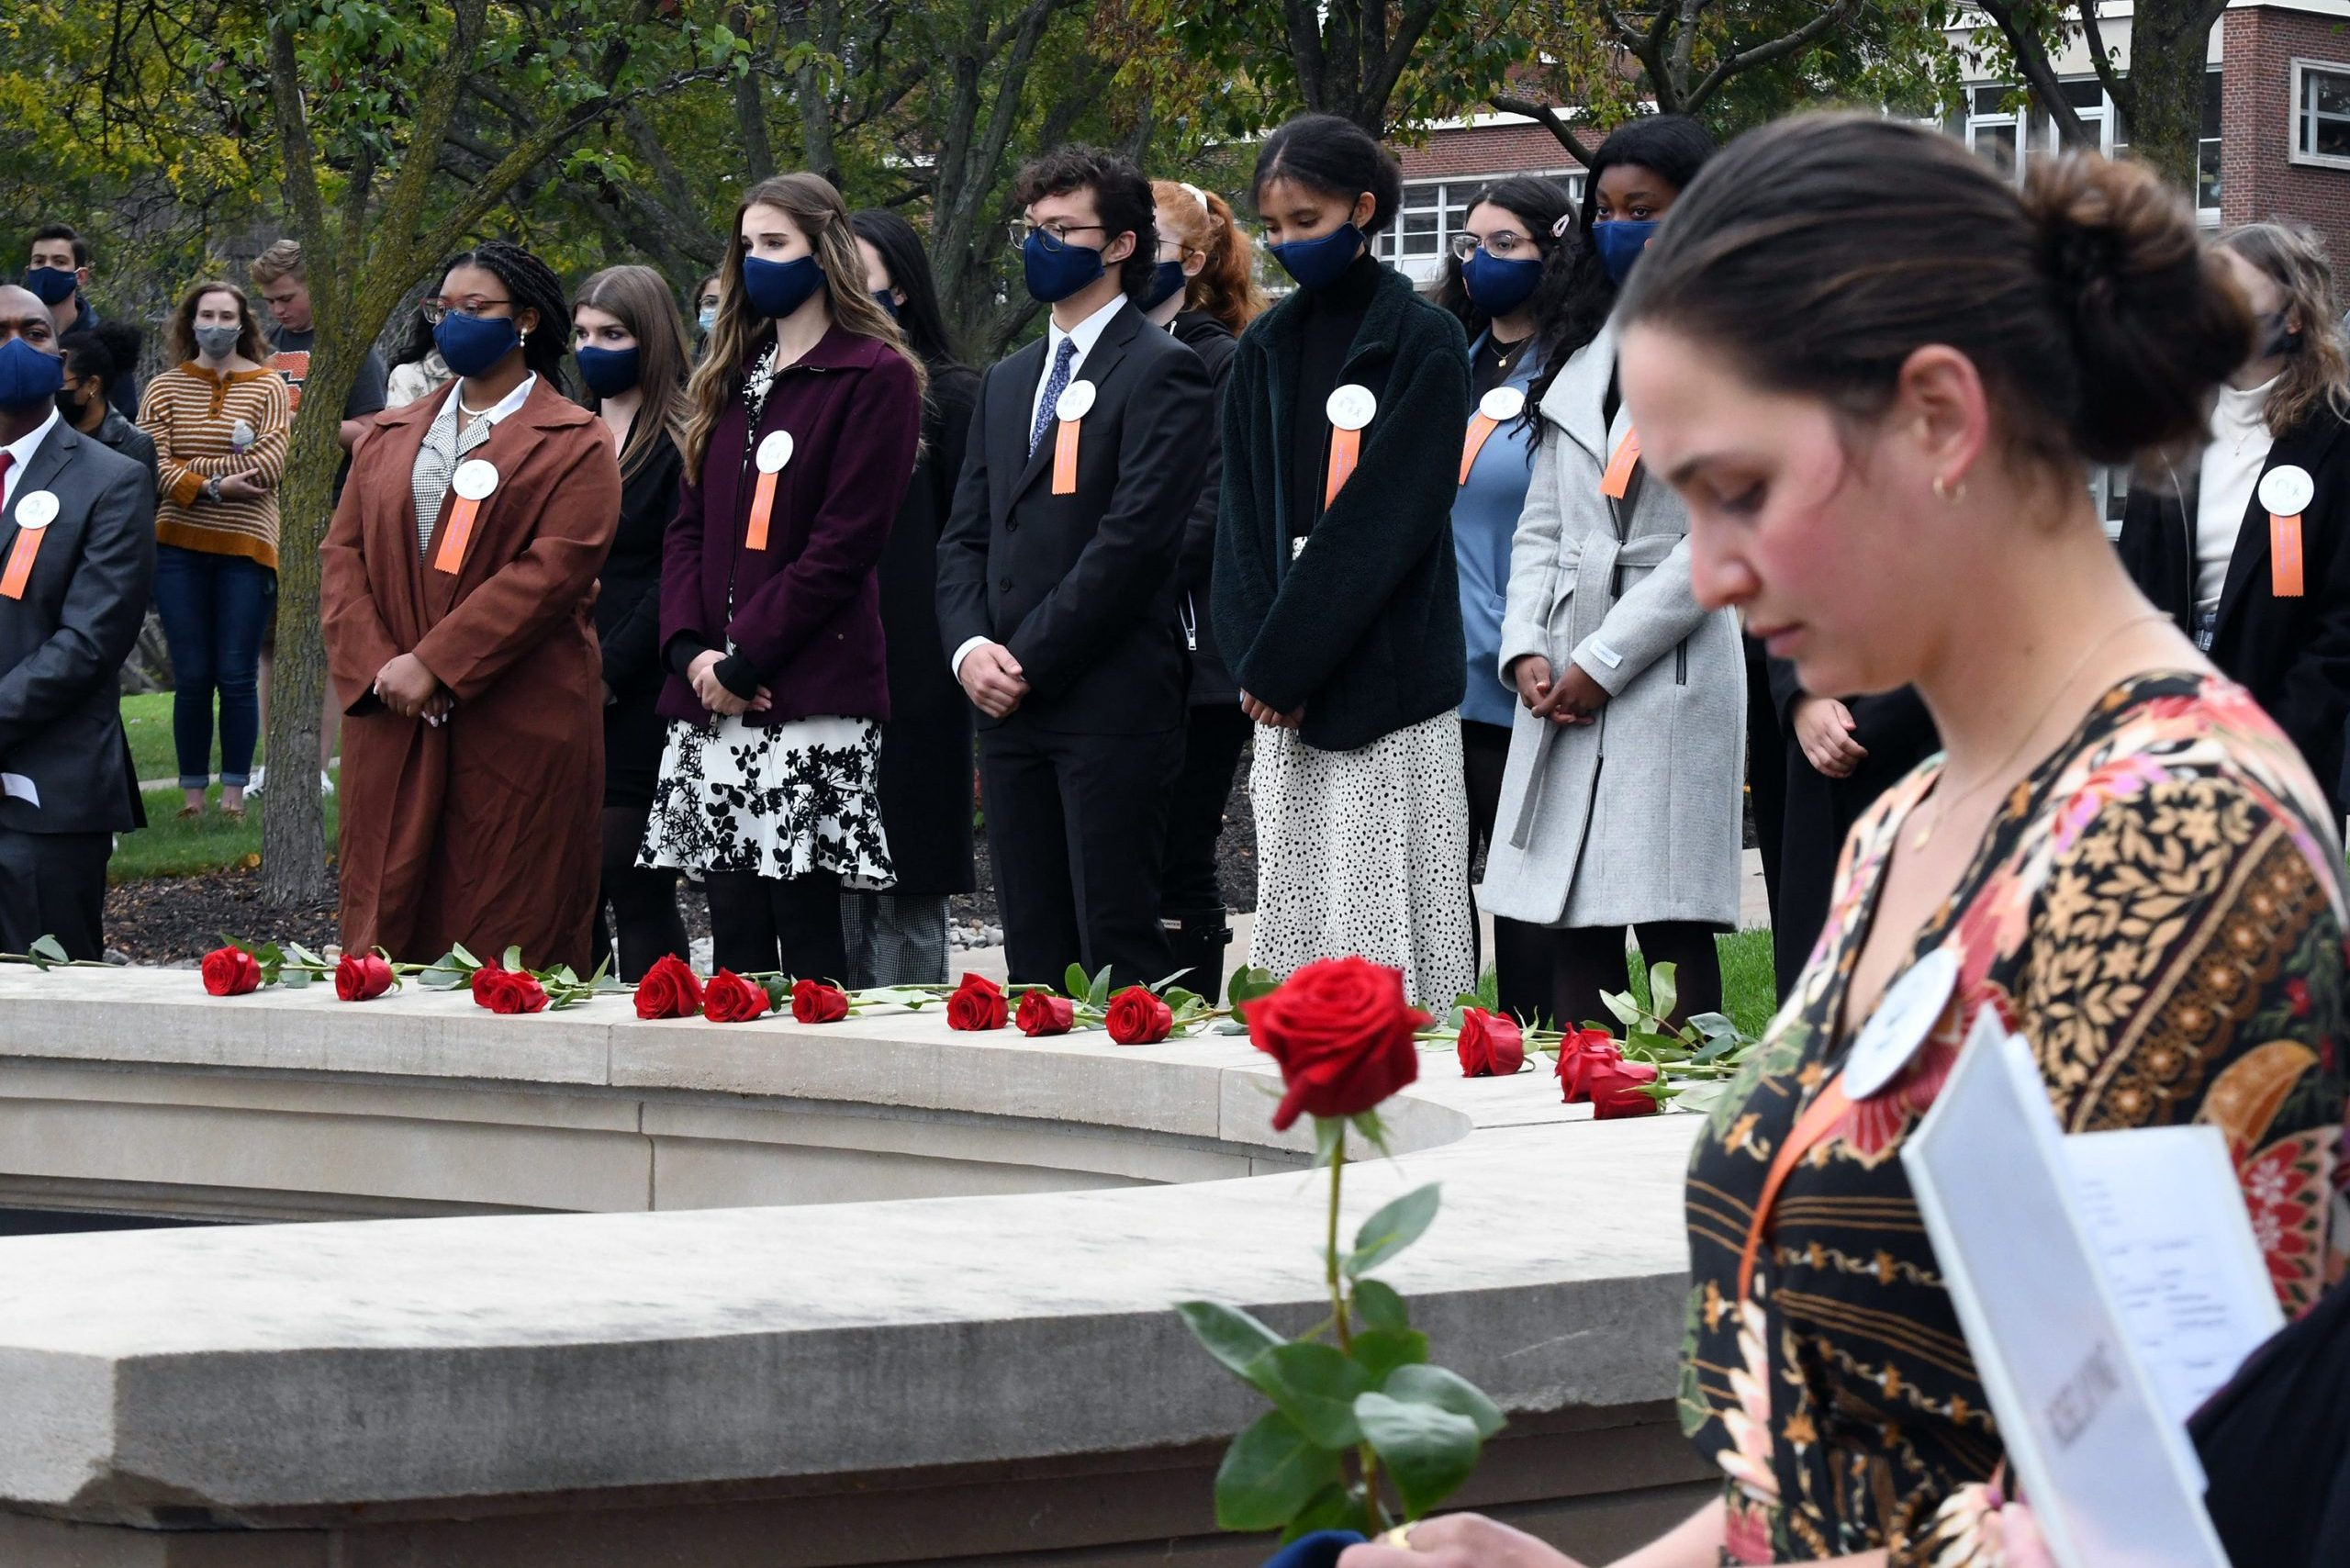 Syracuse University community members gathered to honor the loss of 35 SU students in the crash of the Pan Am Flight 103 33 years ago. The Rose-Laying Ceremony took place at 2:03 pm on Friday October 22 and consisted of Remembrance Scholars presenting red roses in honor of the lives lost on December 21, 1988. (Photo by Cali Delisle)